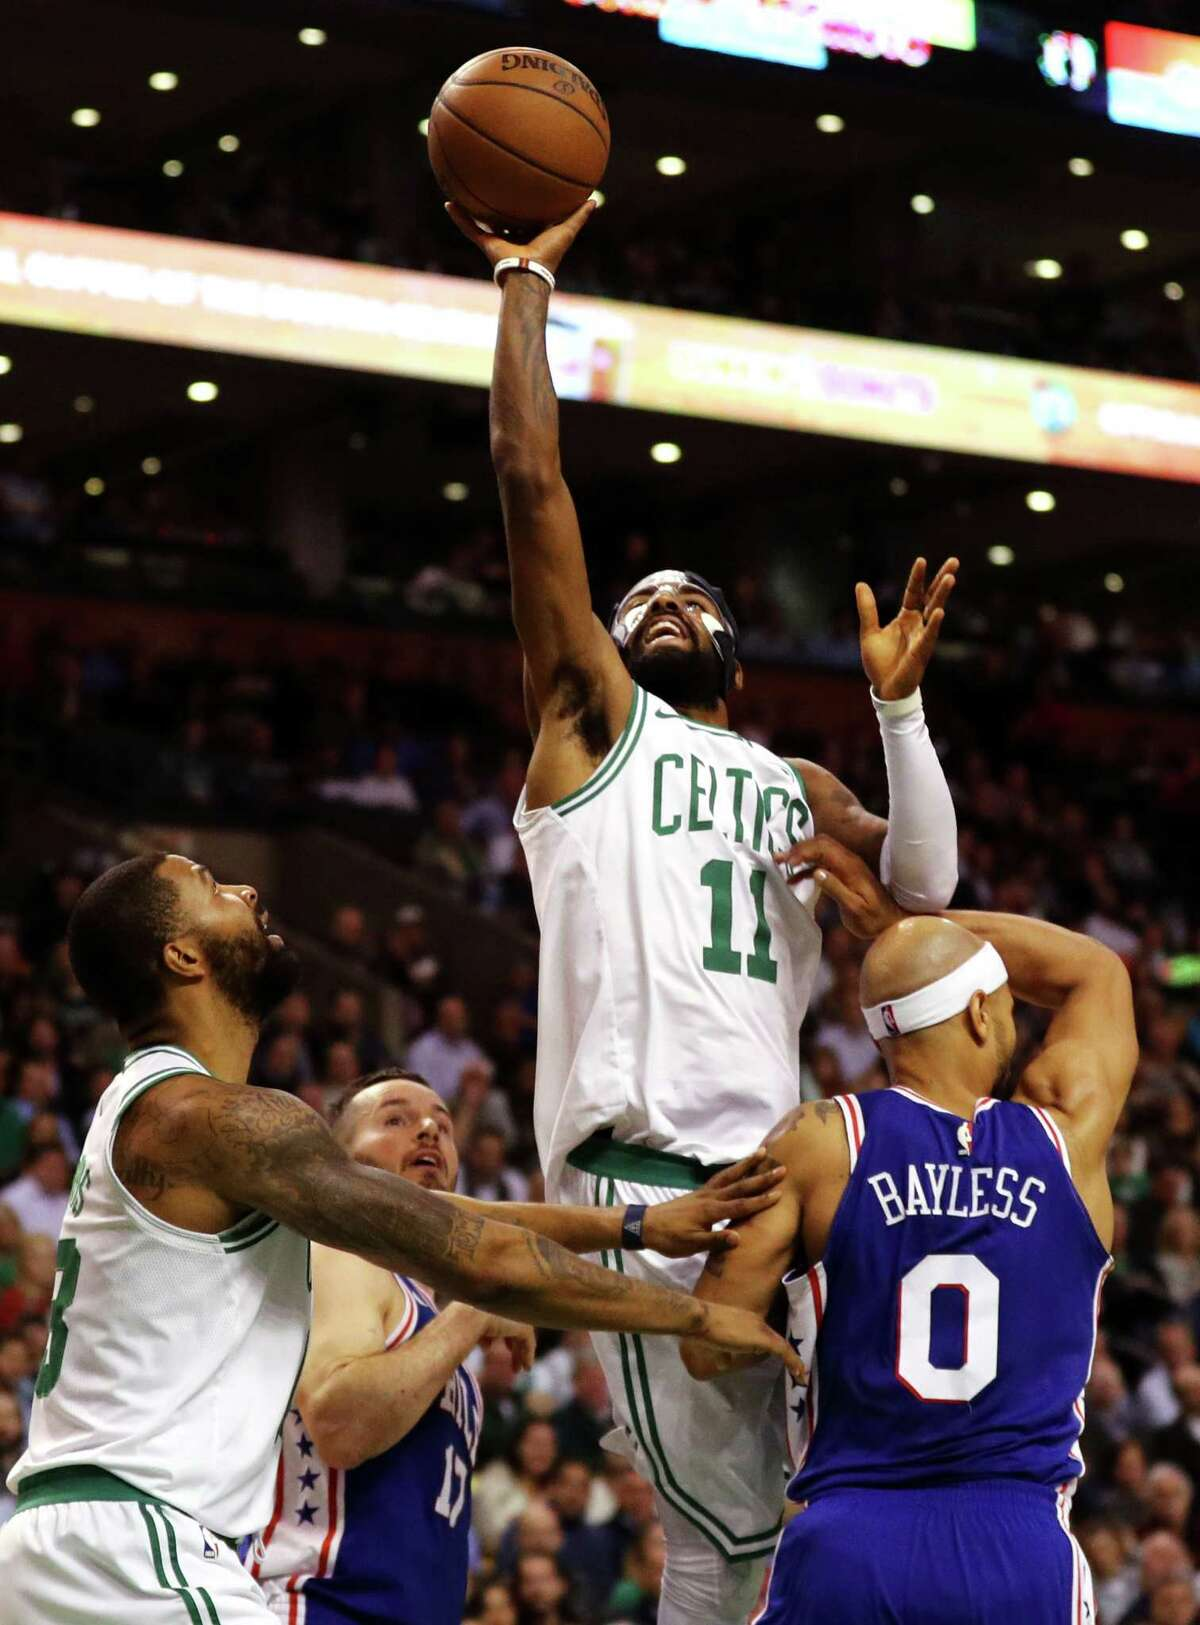 BOSTON, MA - NOVEMBER 30: Kyrie Irving #11 of the Boston Celtics takes a shot over Jerryd Bayless #0 of the Philadelphia 76ers during the second quarter at TD Garden on November 30, 2017 in Boston, Massachusetts.(Photo by Maddie Meyer/Getty Images) ORG XMIT: 775026965